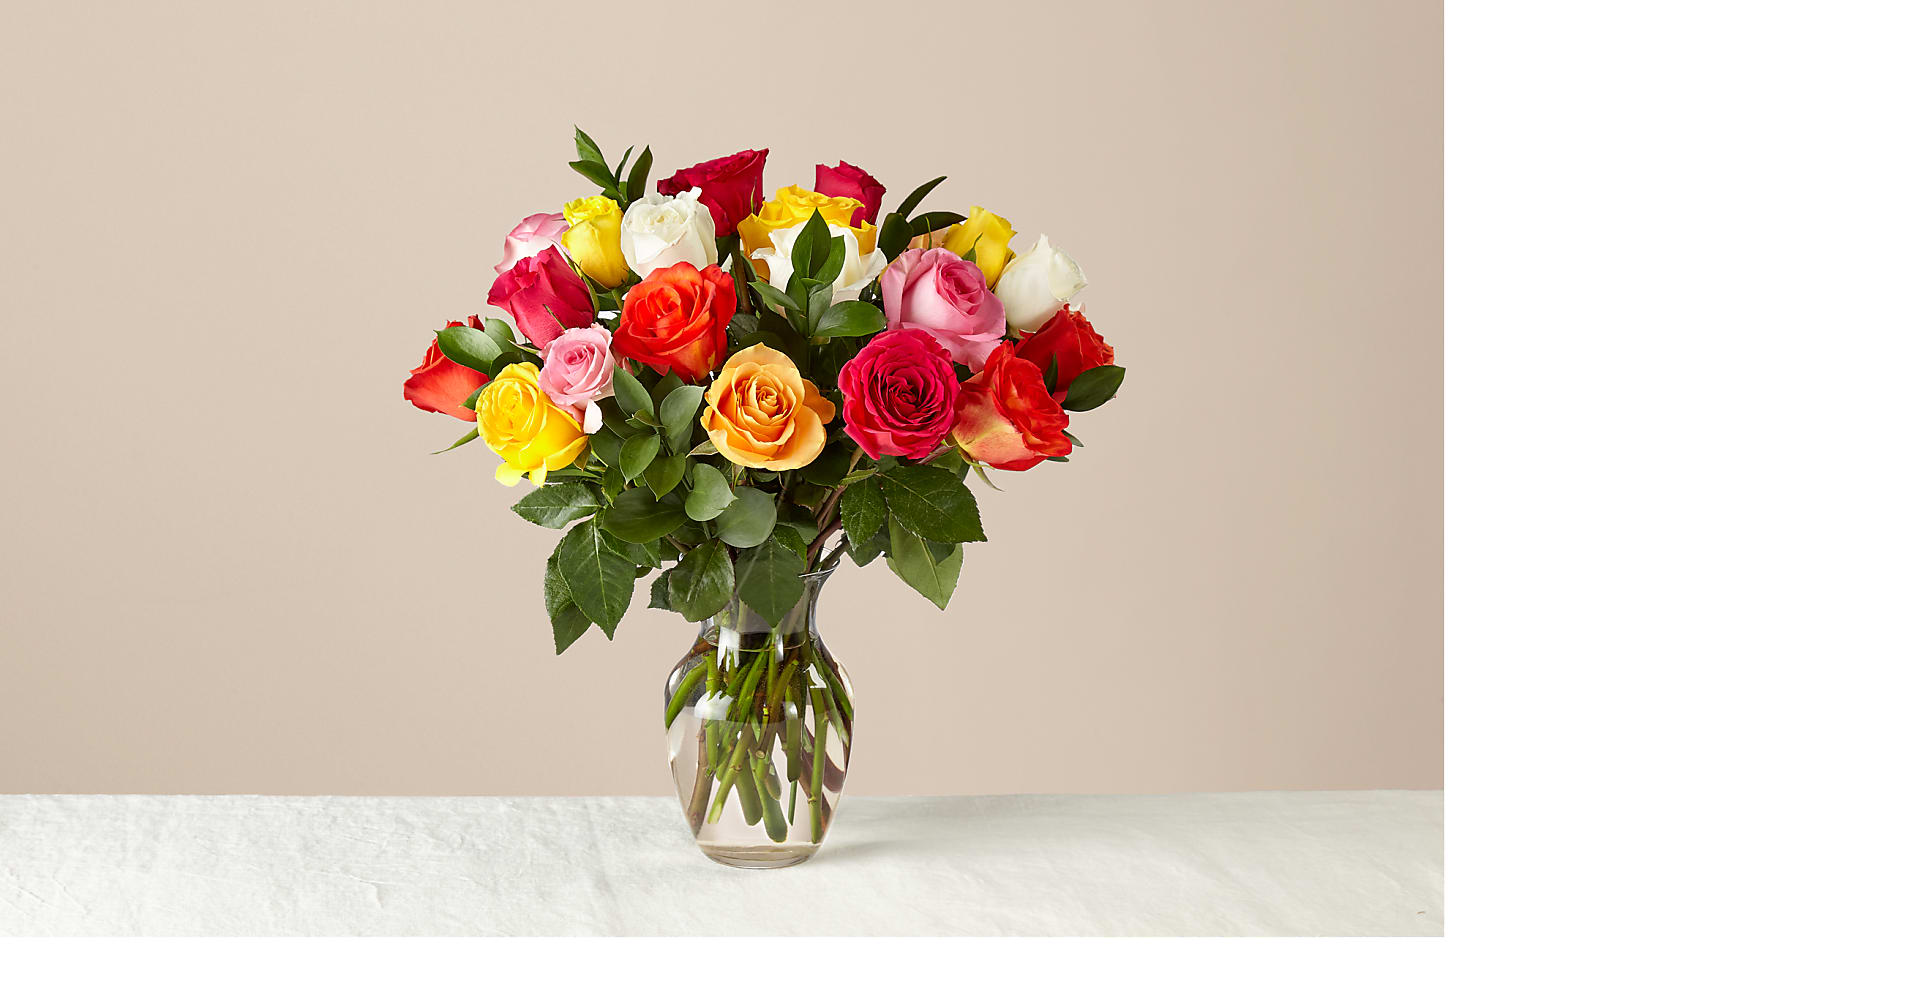 Mixed Roses with Vase - Image 1 Of 6